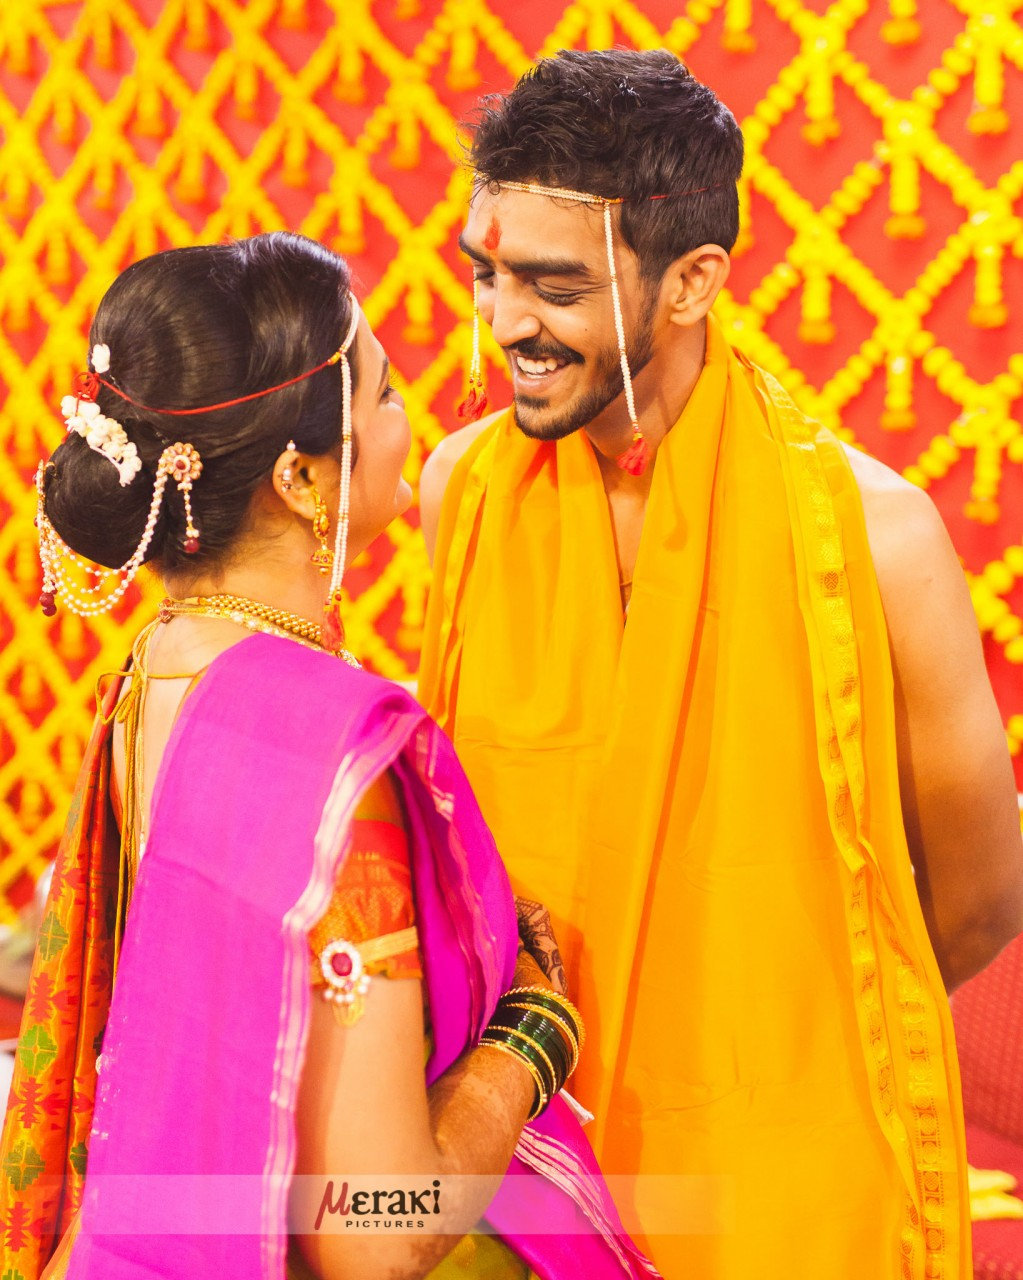 018-IMG_2717-Ajinkya_Maithili_Wedding-WeddingDay-WBS